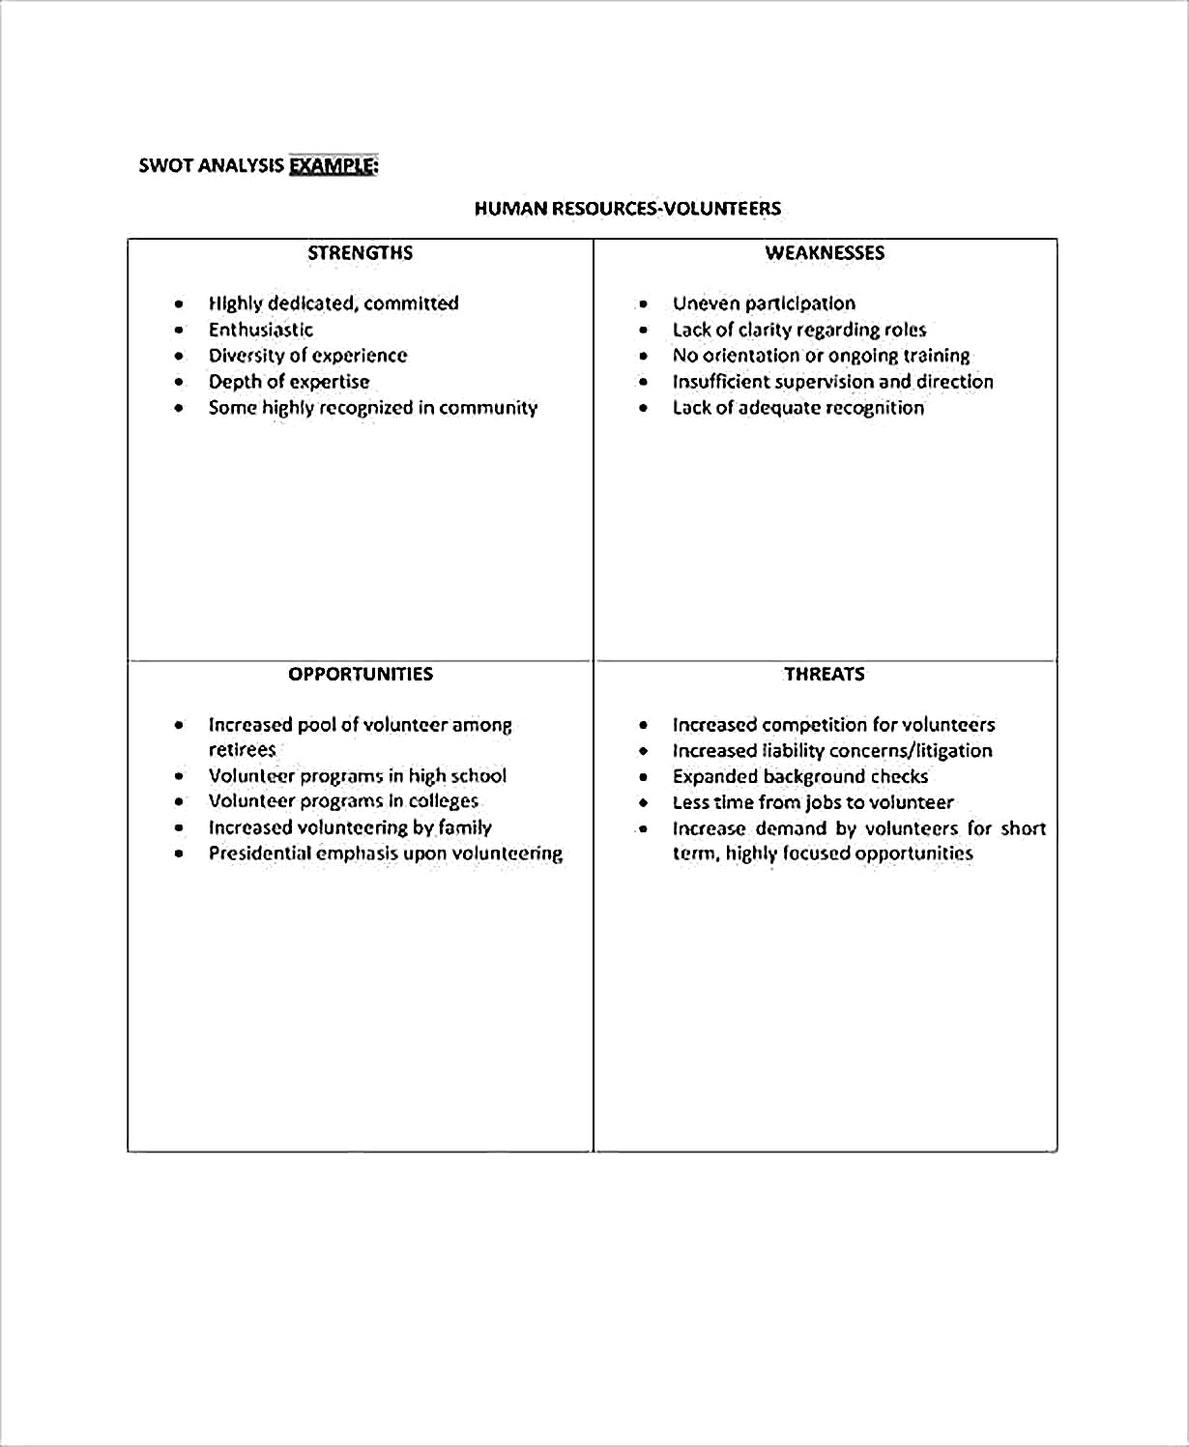 Templates for Human Resources Volunteers SWOT Analysis Sample 1